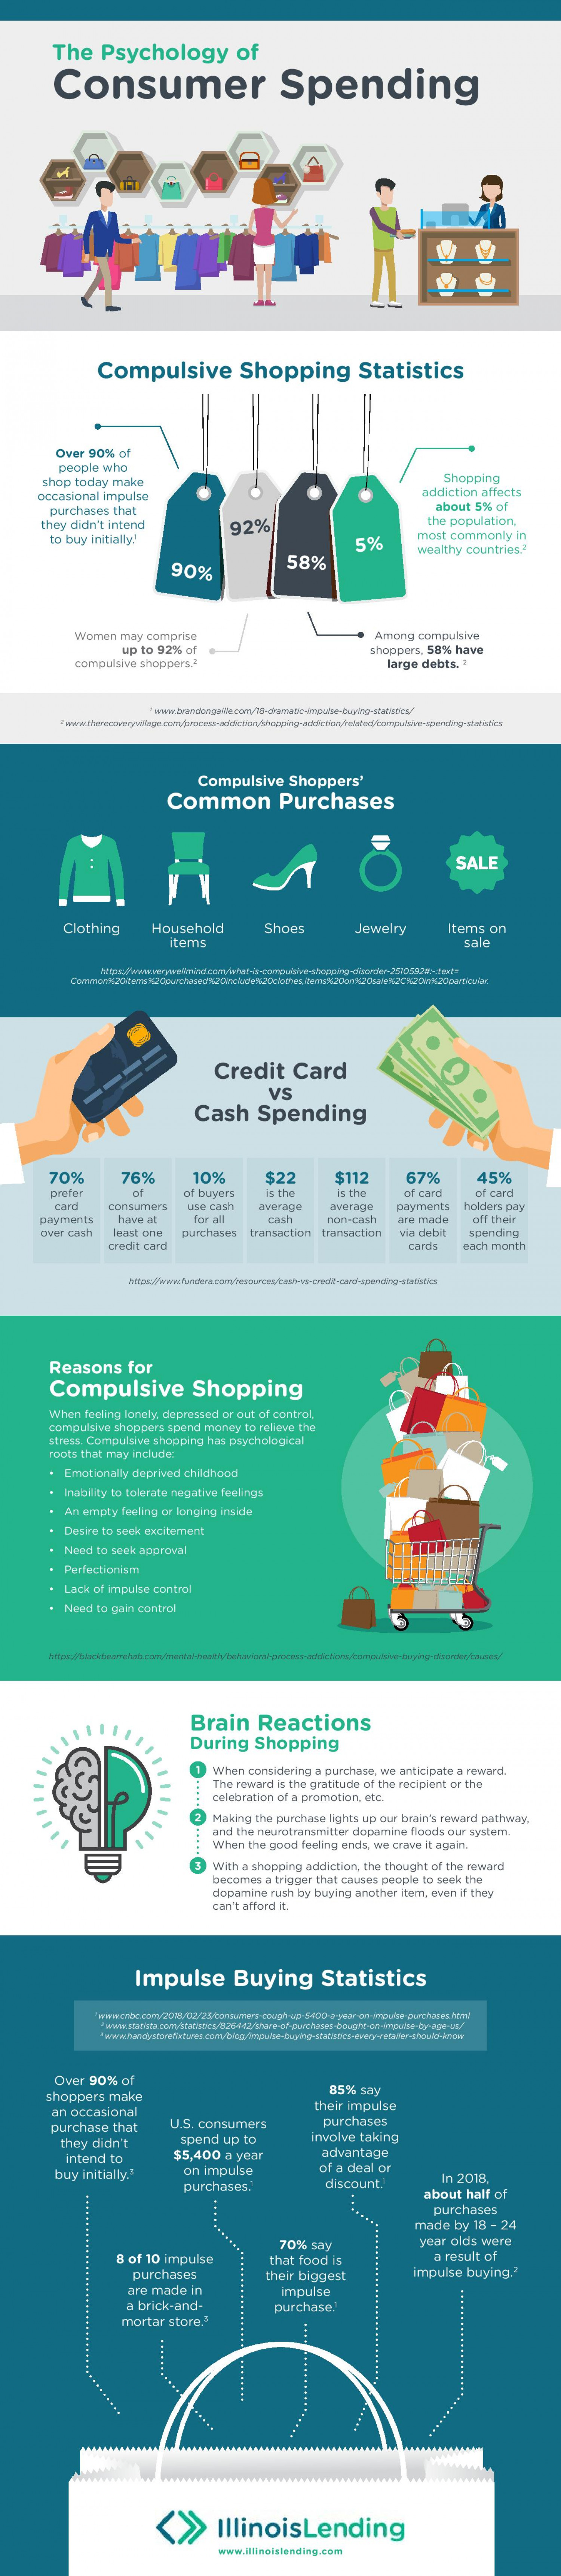 The Psychology Of Consumer Spending Infographic